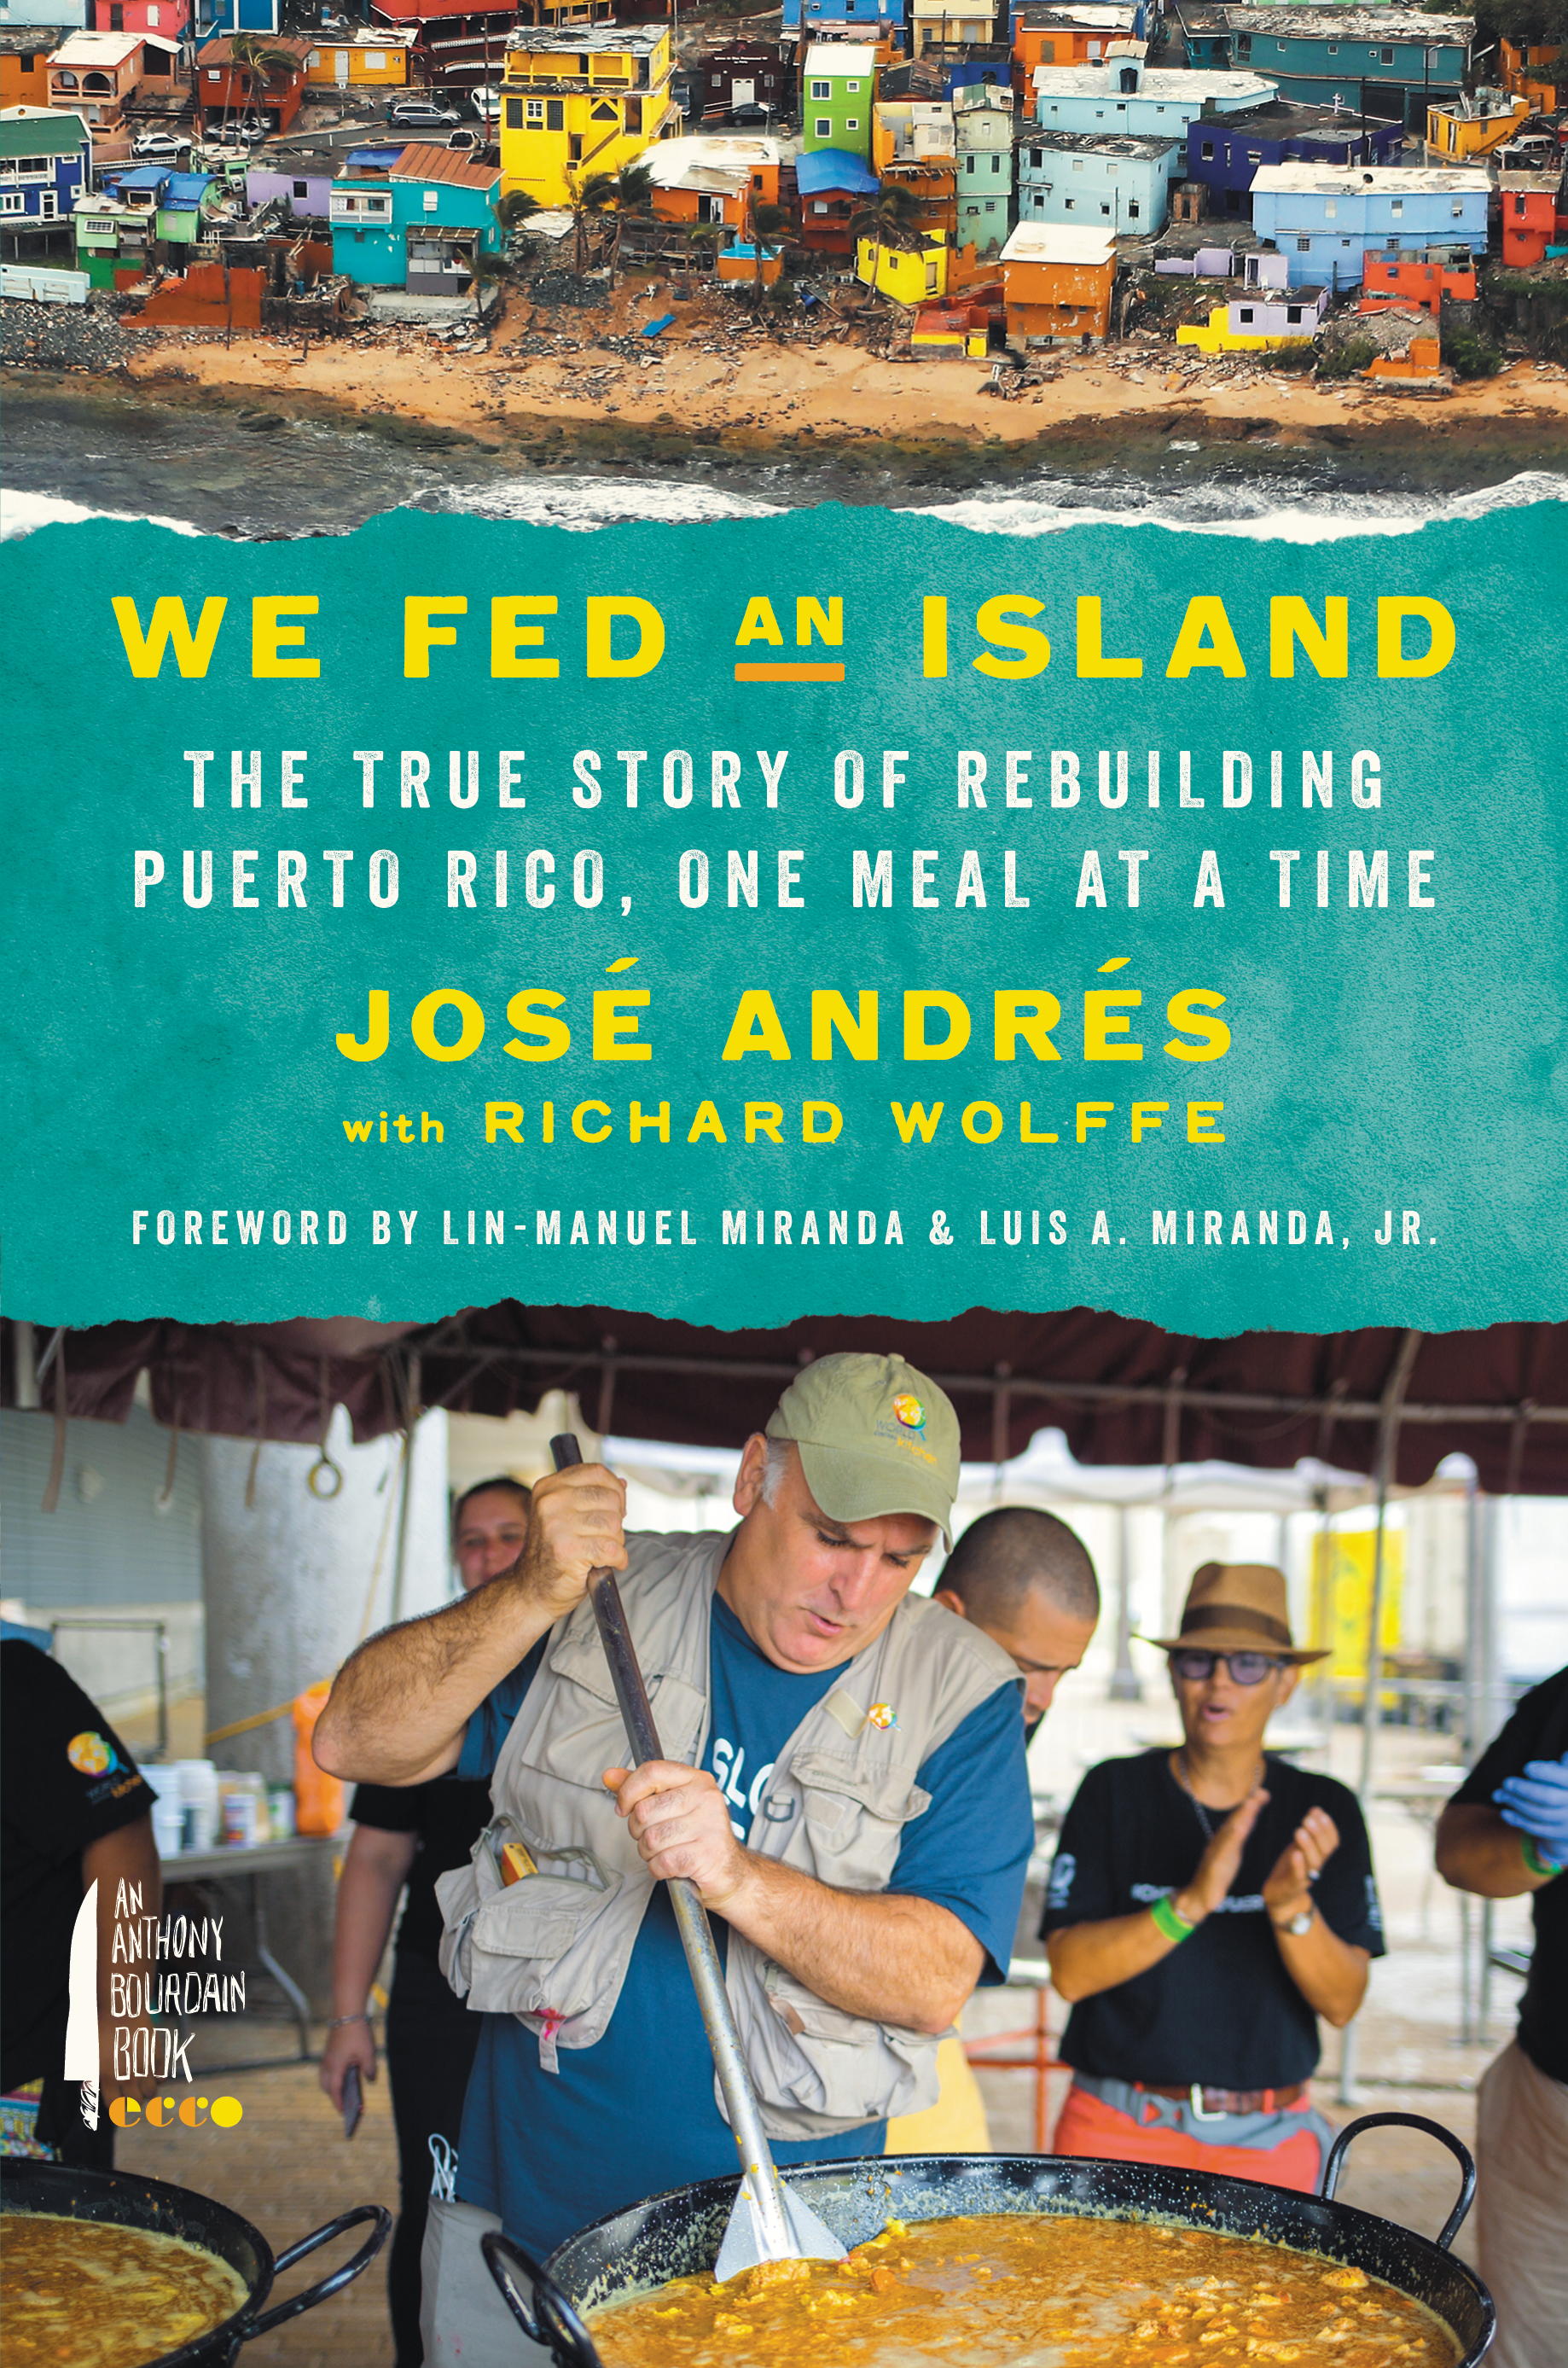 """We Fed an Island: The True Story of Rebuilding Puerto Rico, One Meal at a Time"" by{ }José Andrés (Image: Courtesy{ }Anthony Bourdain/Ecco)"